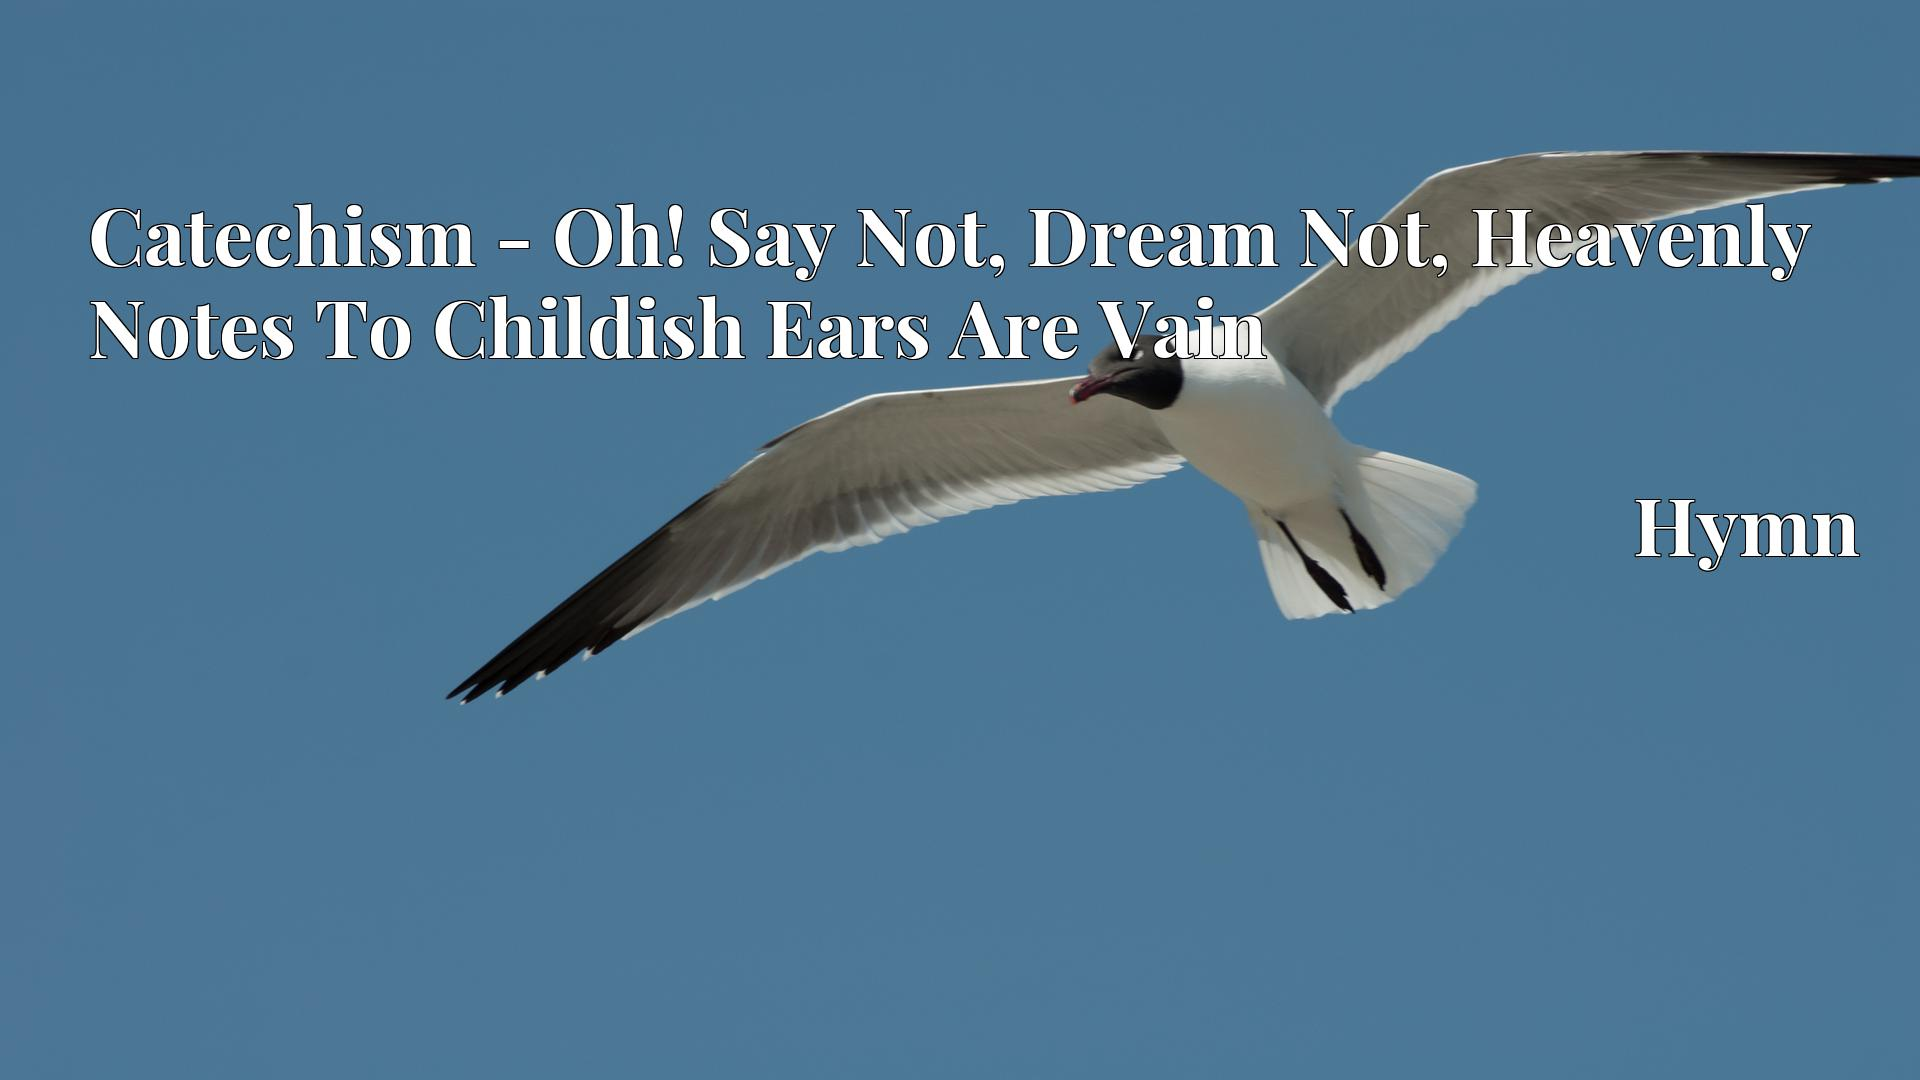 Catechism - Oh! Say Not, Dream Not, Heavenly Notes To Childish Ears Are Vain Hymn